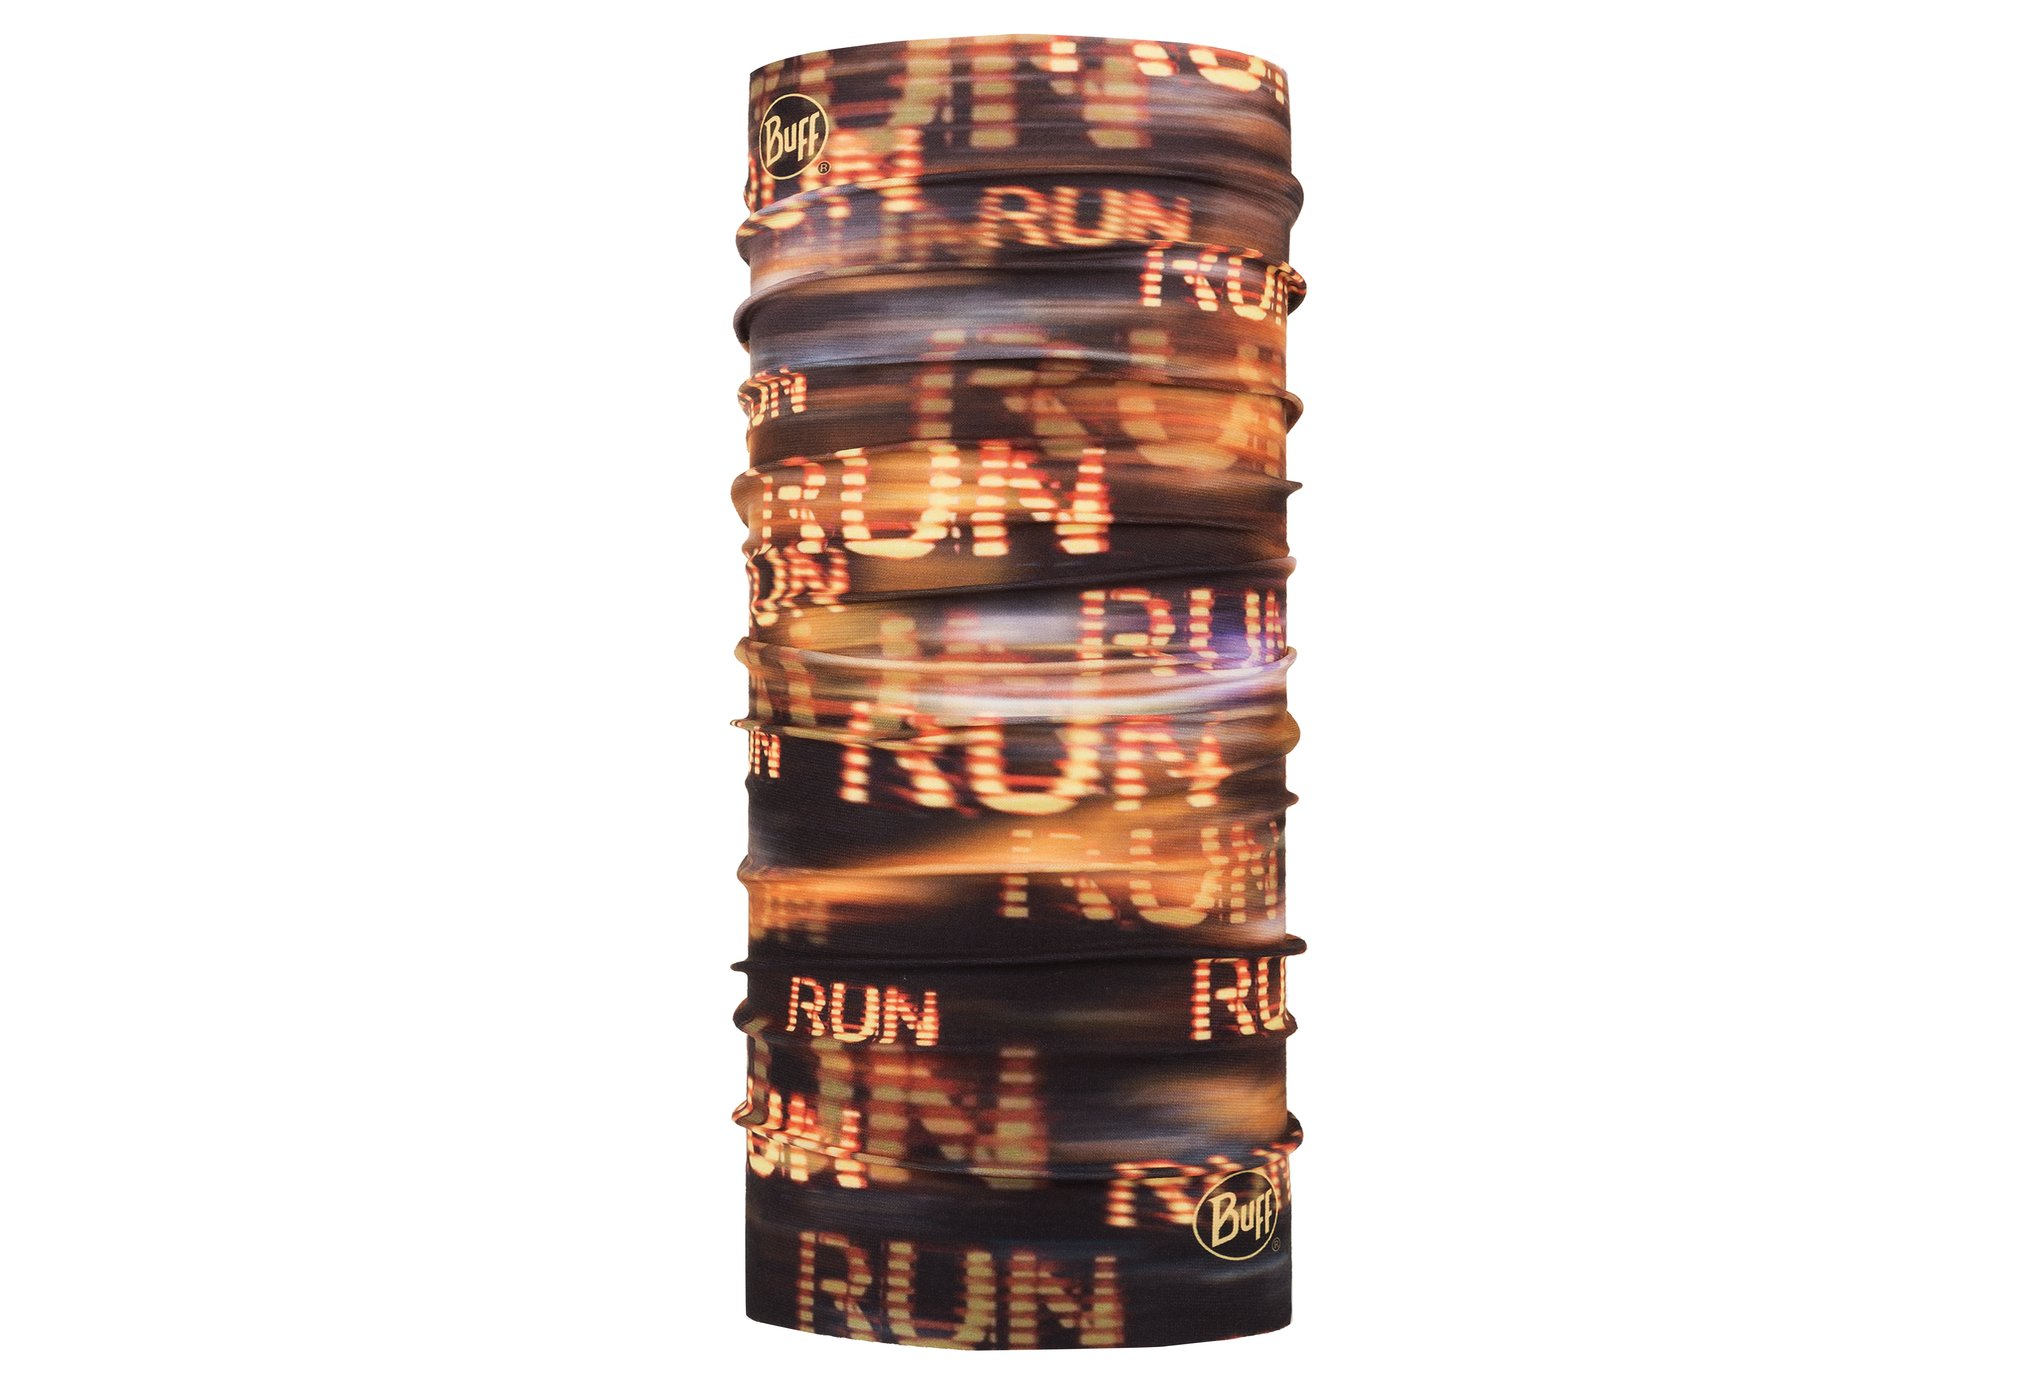 Buff Original Run Multi Tours de cou